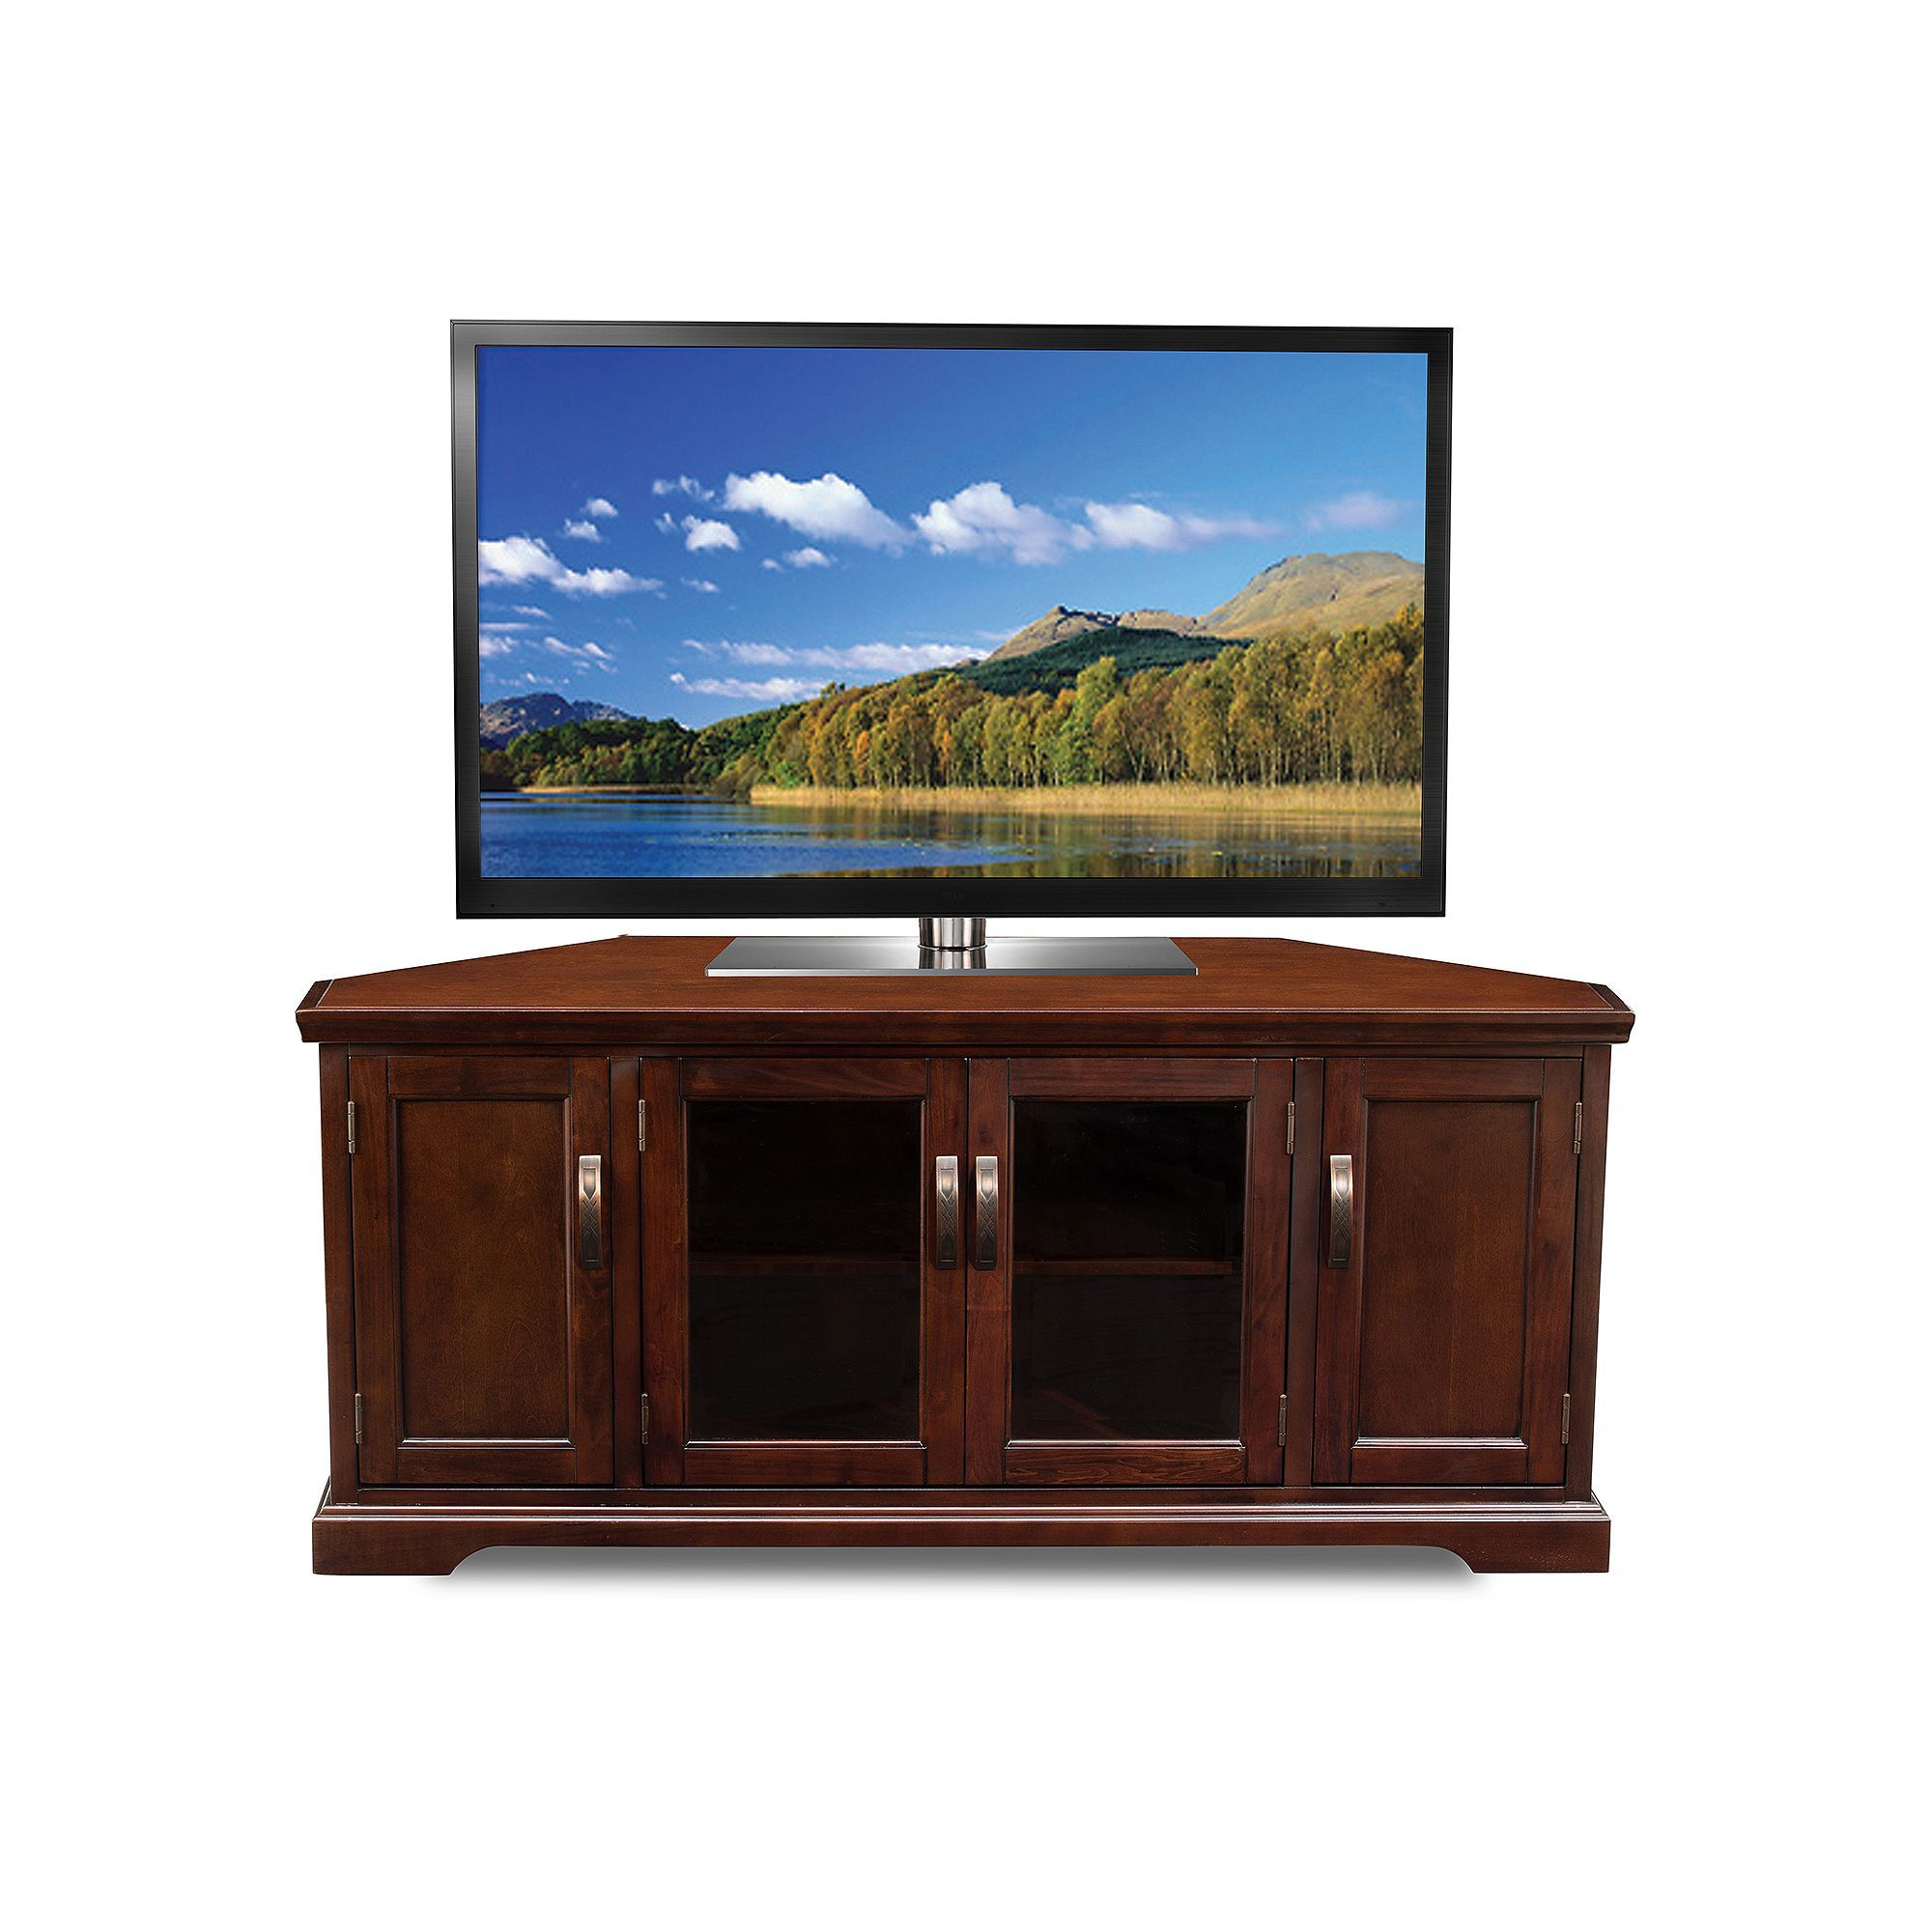 Leick Furniture Cabinet Corner TV Stand, Brown